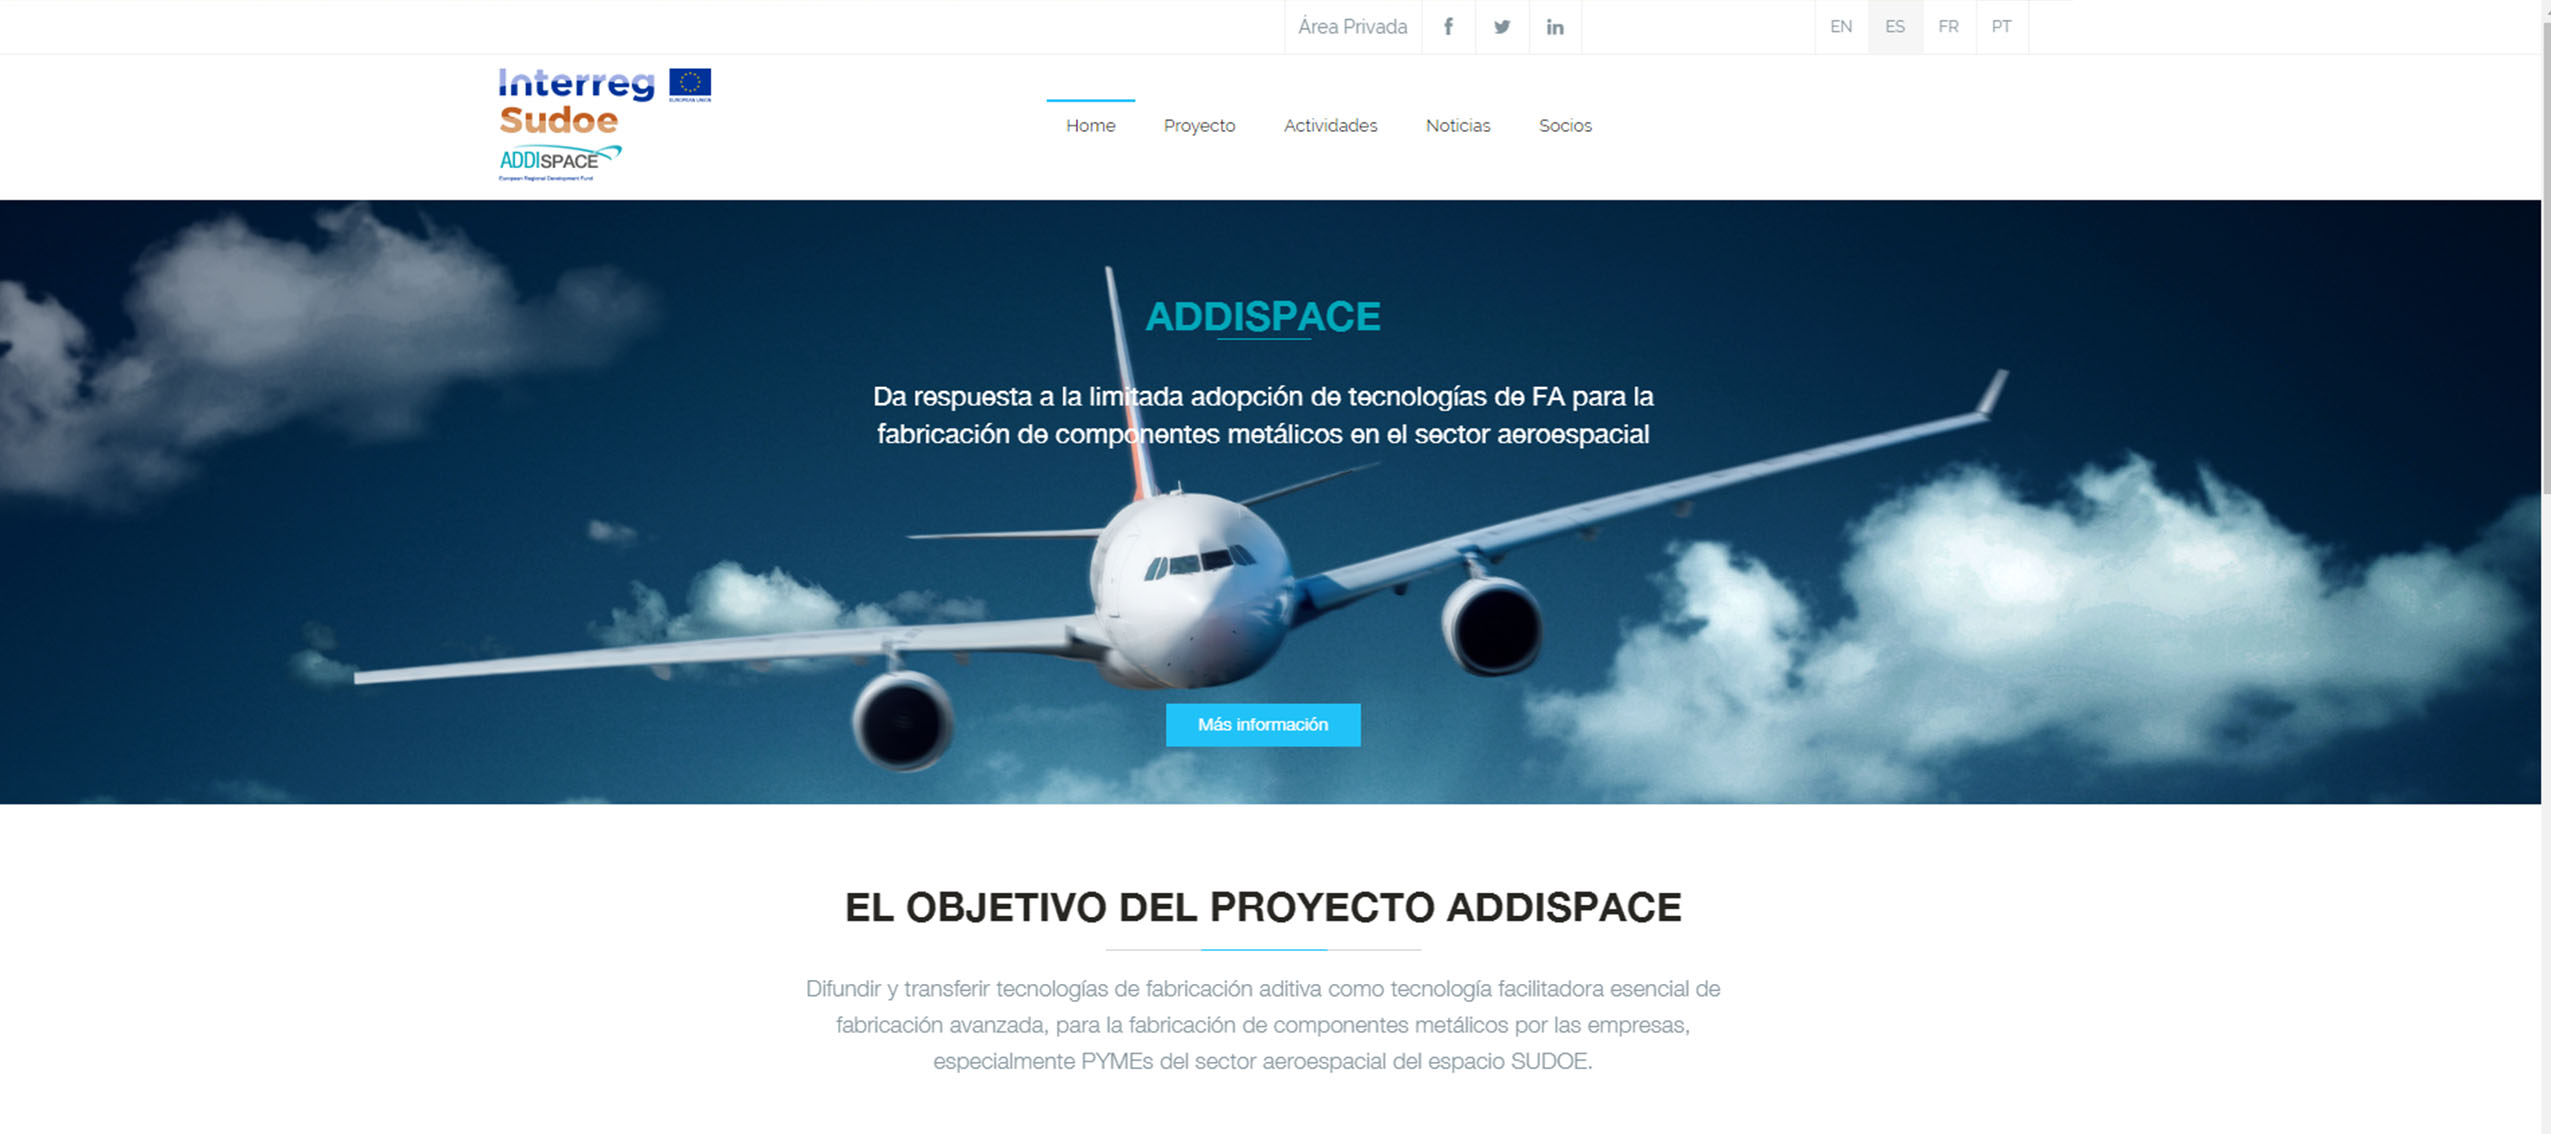 ADDISPACE launches its website